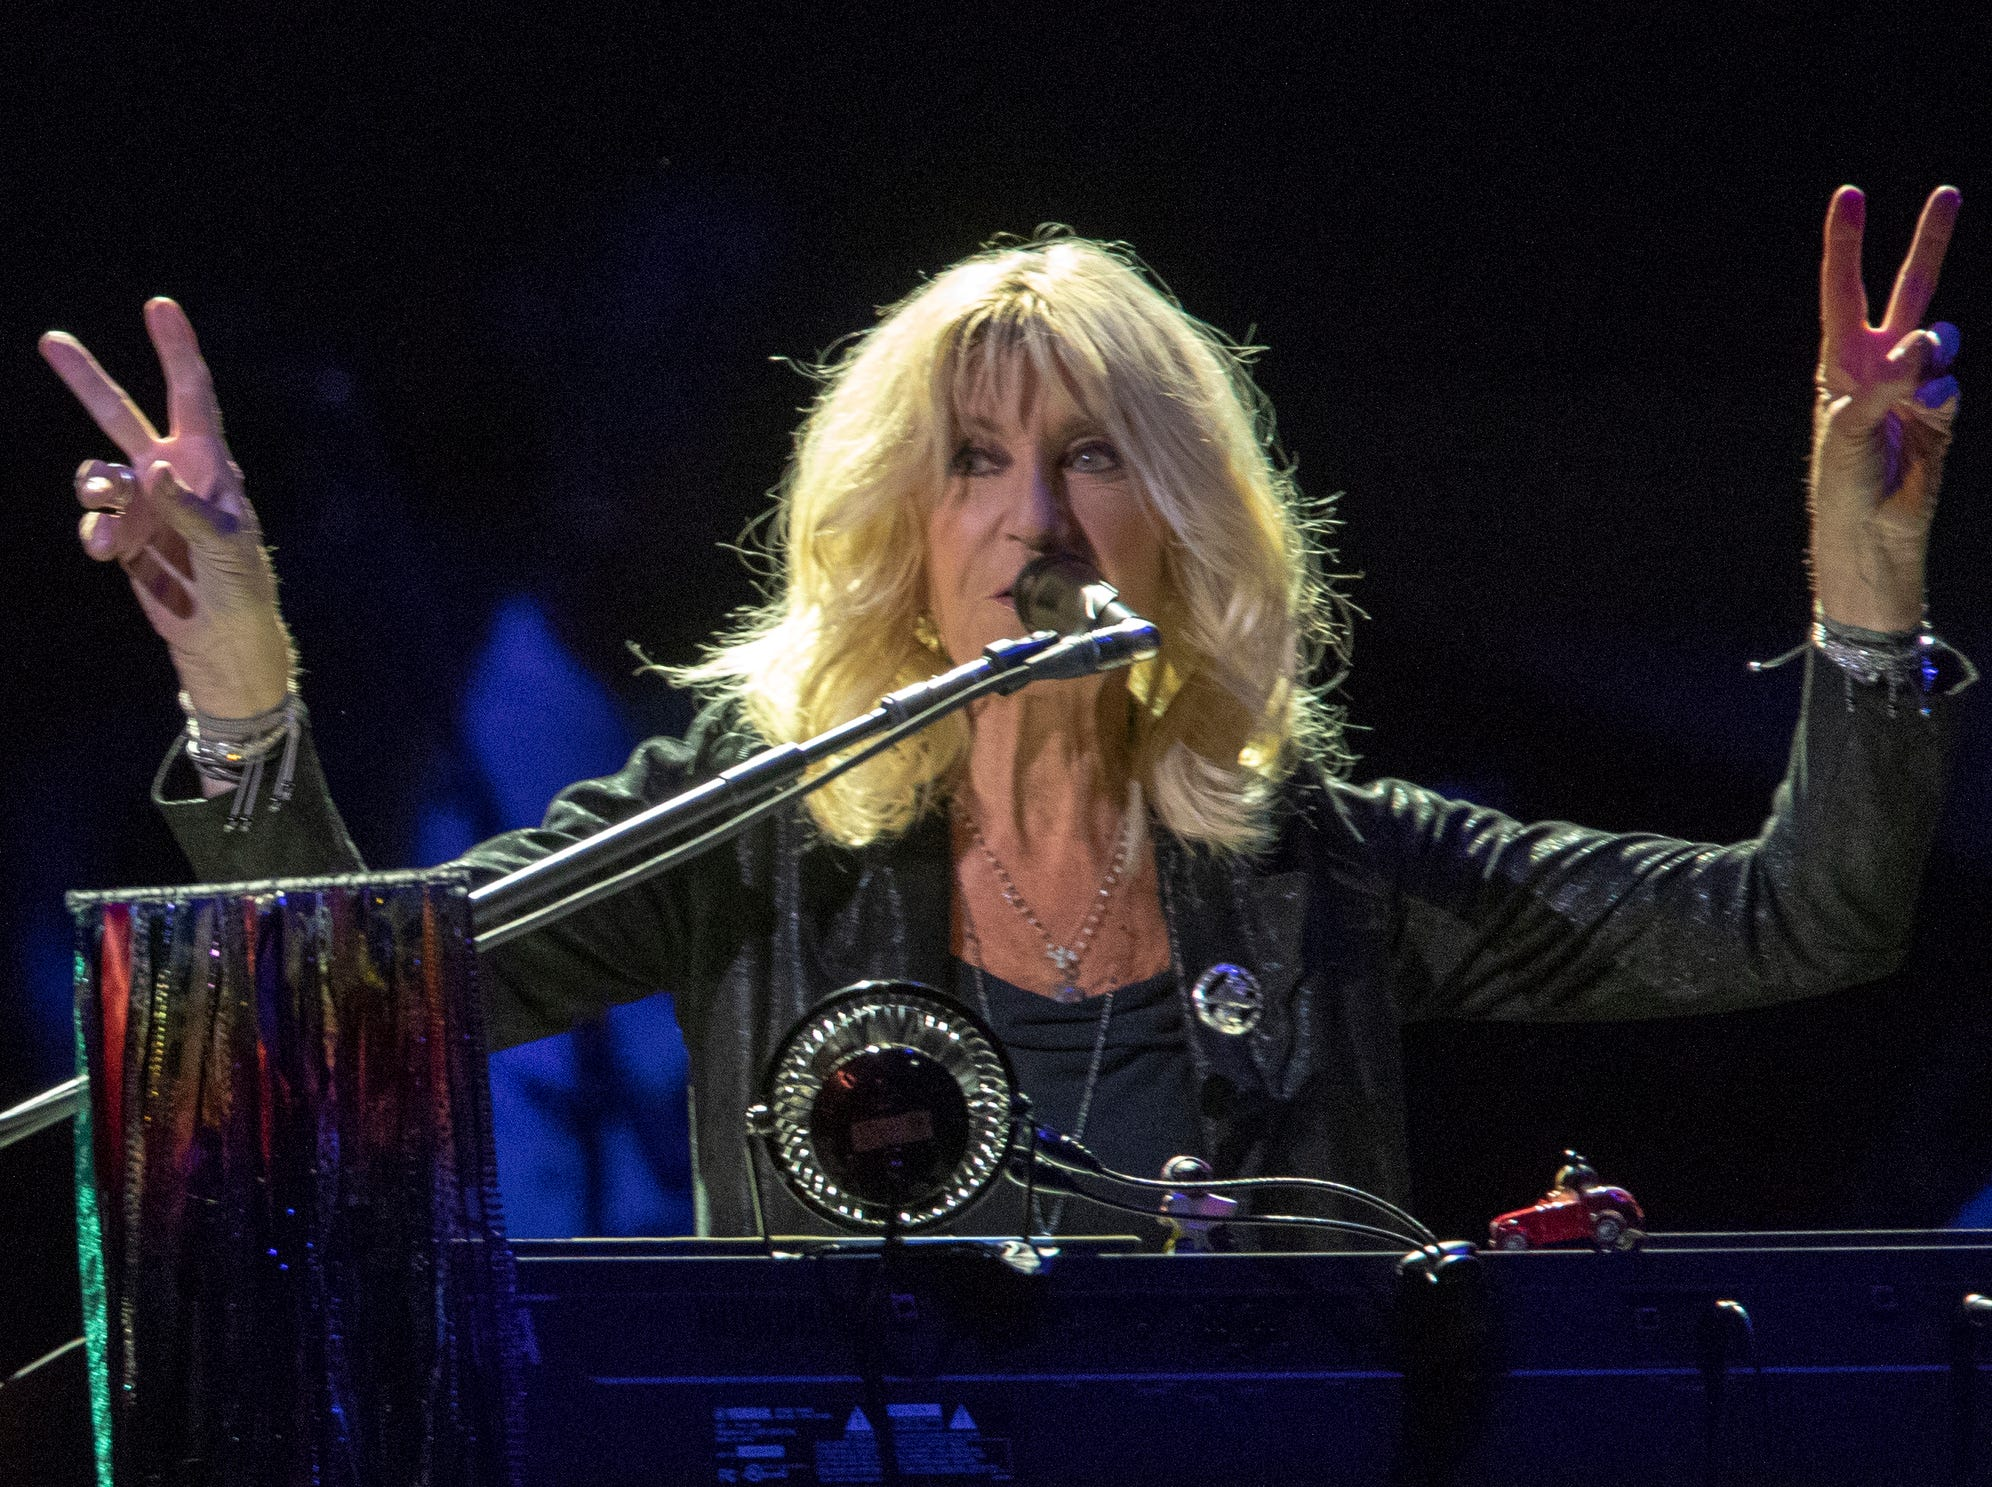 Christine McVie, during a performance by Fleetwood Mac at Bankers Life Fieldhouse, Indianapolis, Tuesday, Oct. 16, 2018. The band is playing on their current North American tour.